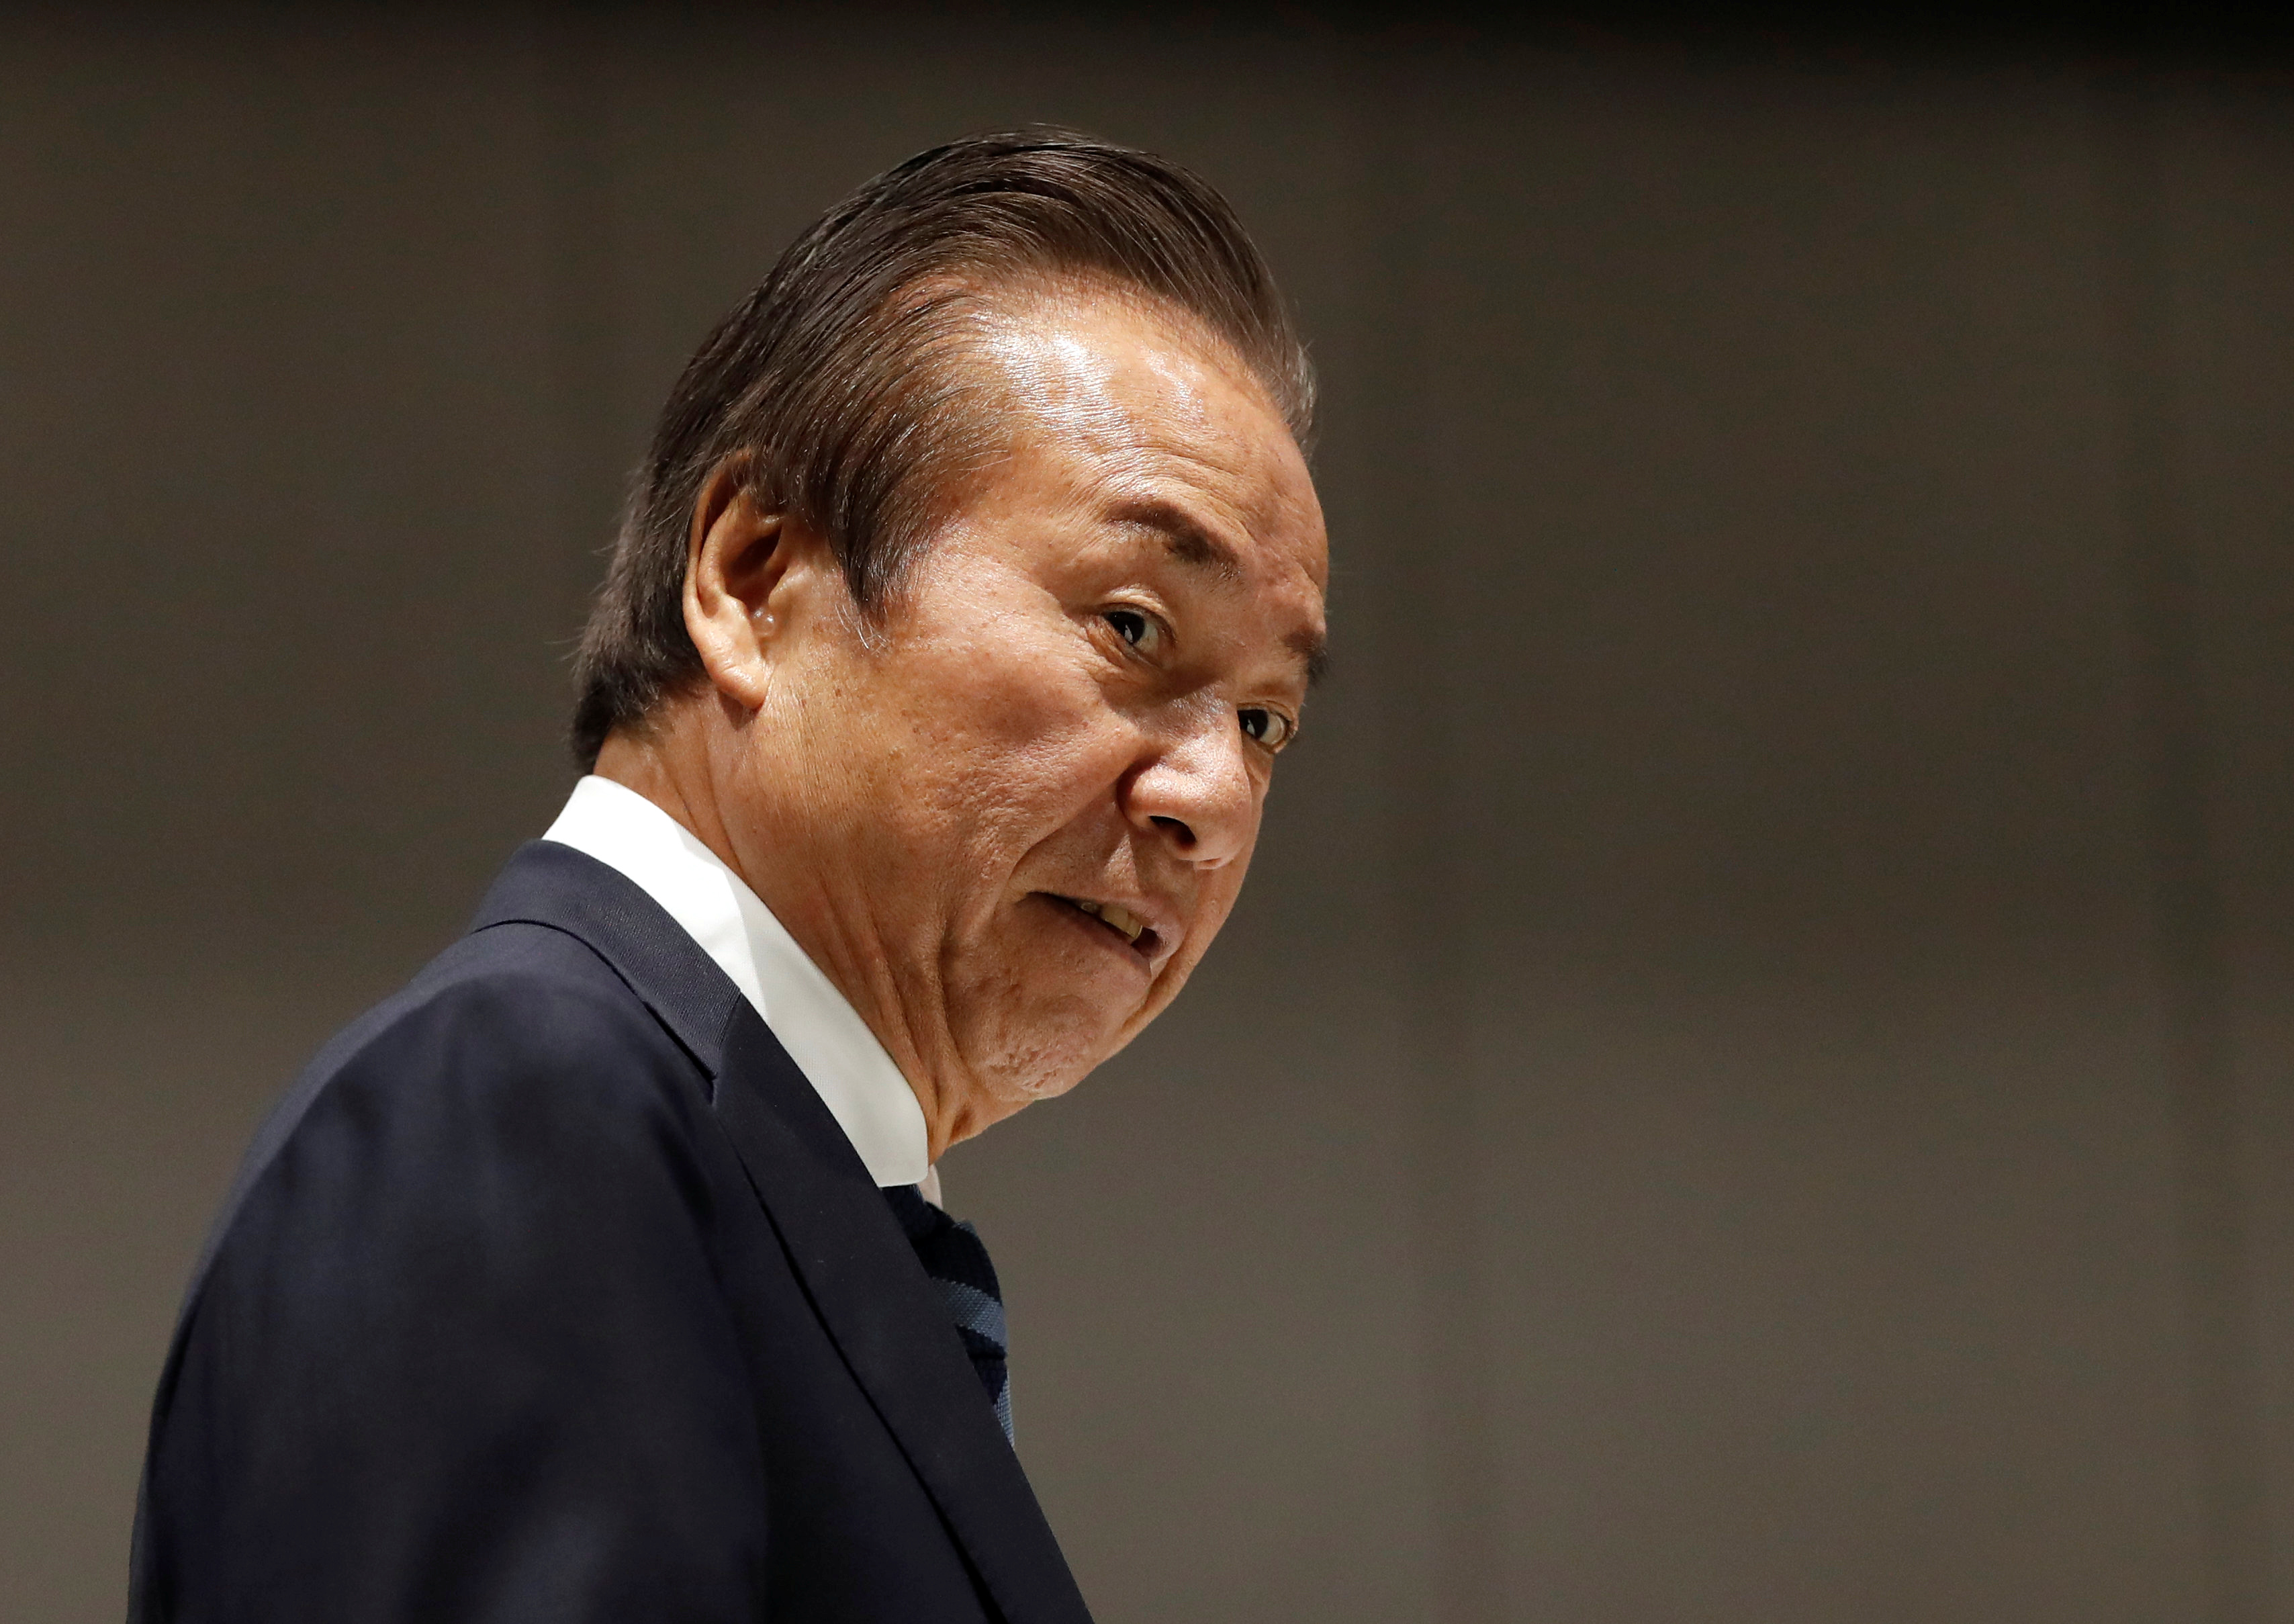 The Tokyo Organising Committee of the Olympic and Paralympic Games (Tokyo 2020) Executive Board member Haruyuki Takahashi arrives at Tokyo 2020 Executive Board Meeting in Tokyo, Japan March 30, 2020.  REUTERS/Issei Kato/Pool